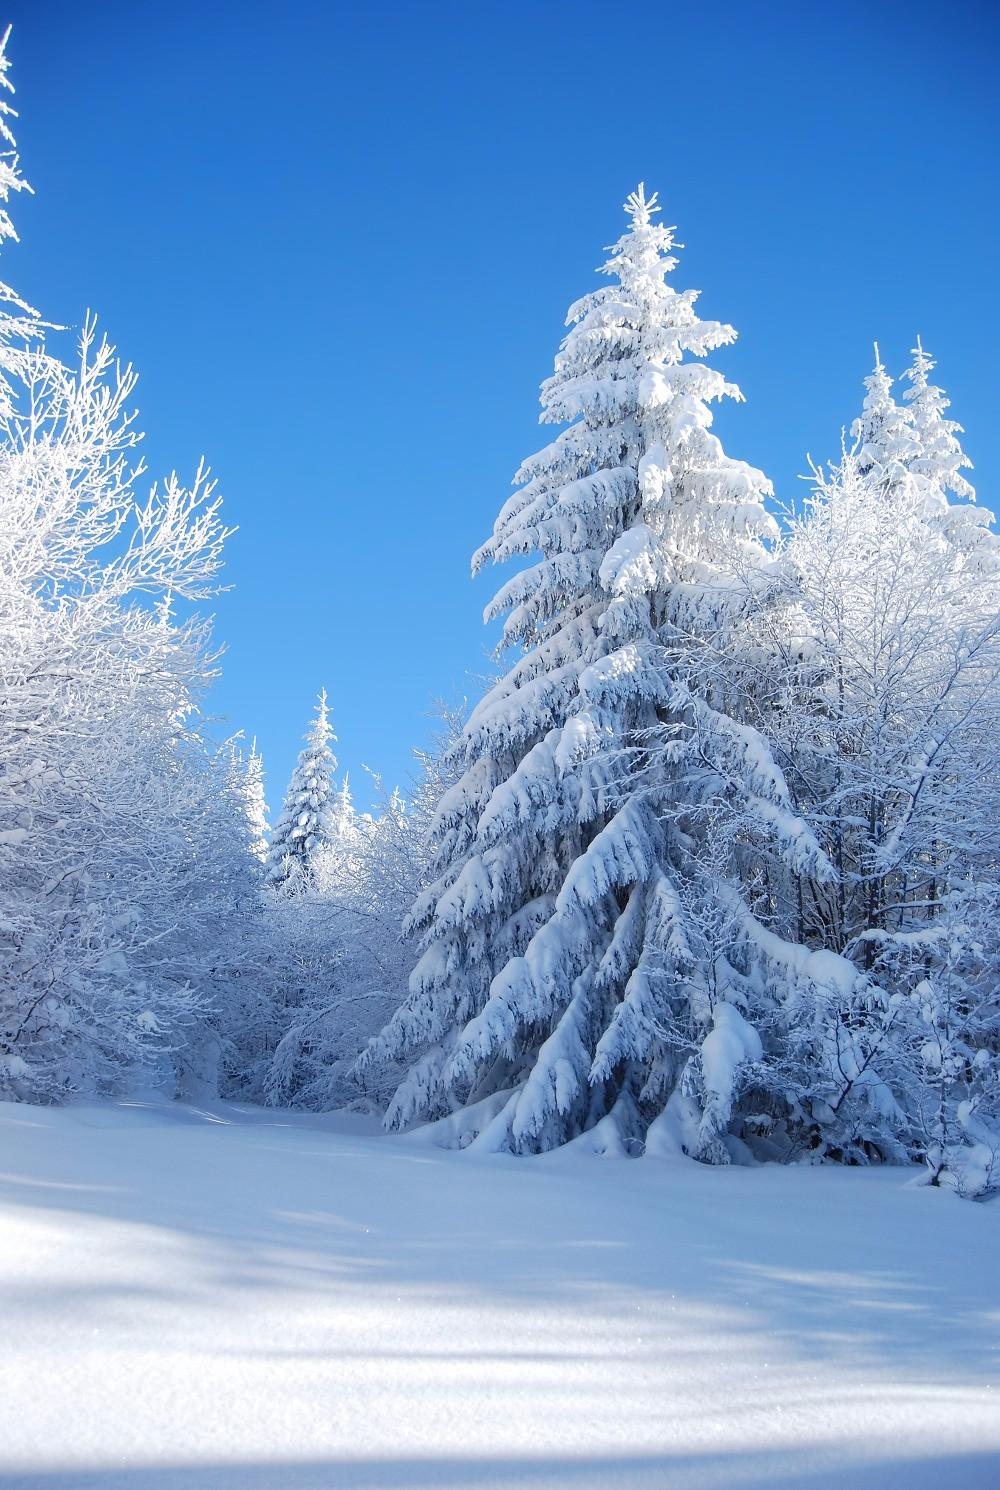 Christmas Falling Snow Wallpaper Note 3 2019 Blue Sky Thick Snow Covered Trees Forest Photo